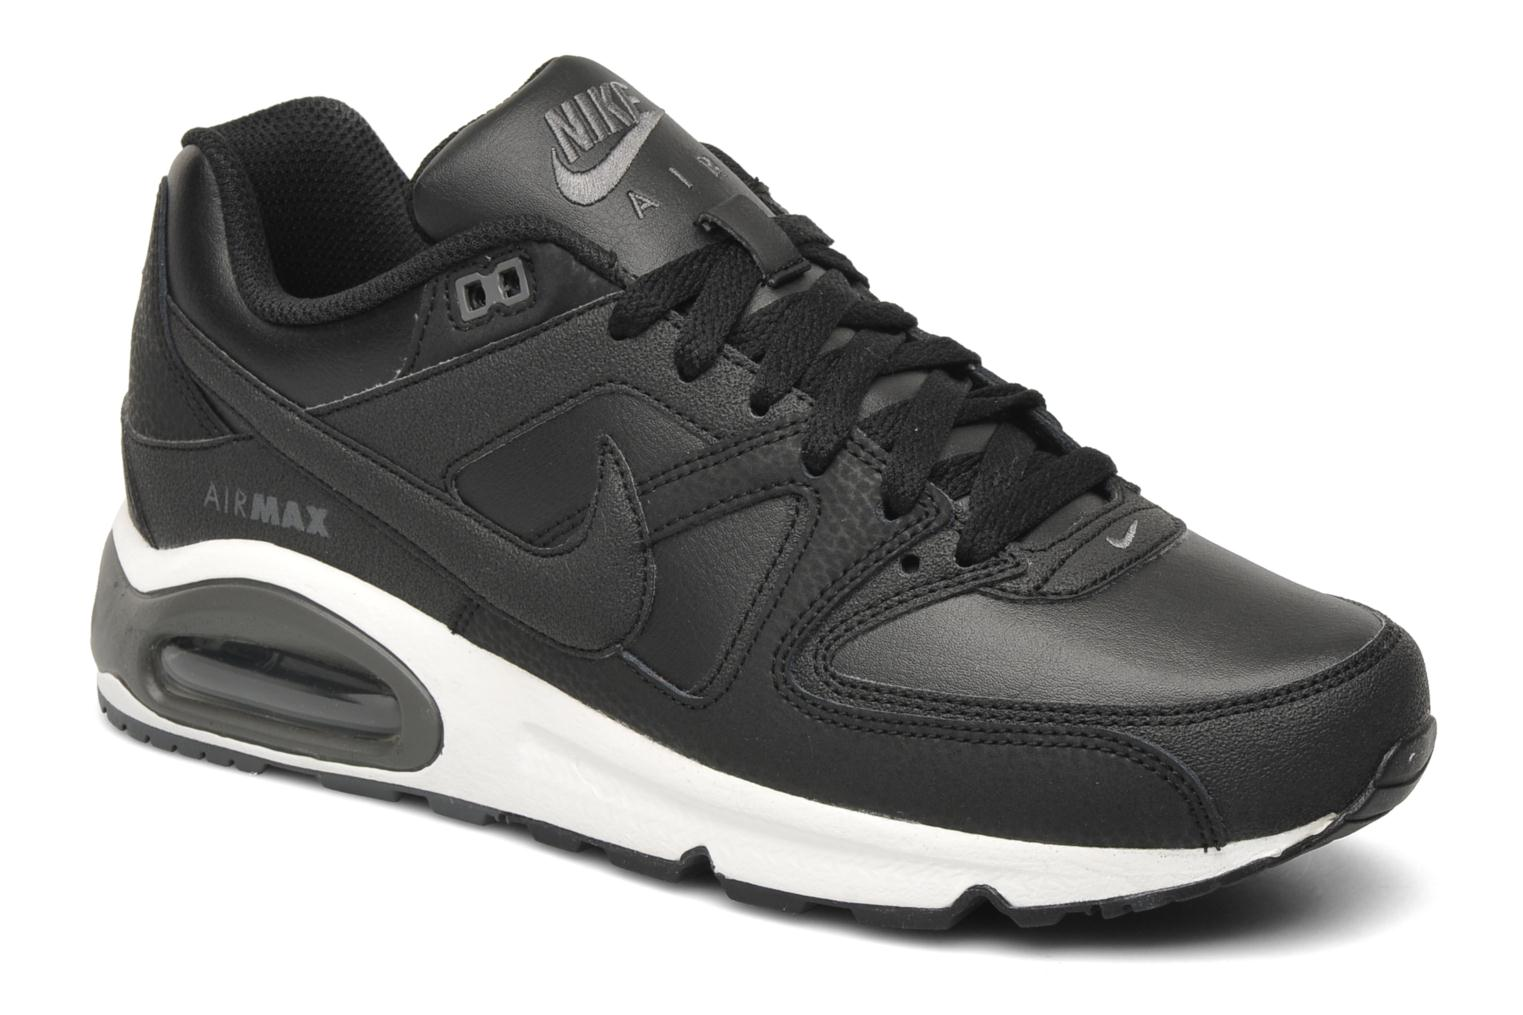 huge selection of 7a5ca 18ac9 ... homme 42  Baskets Nike Air max command leather Noir vue détail paire ...